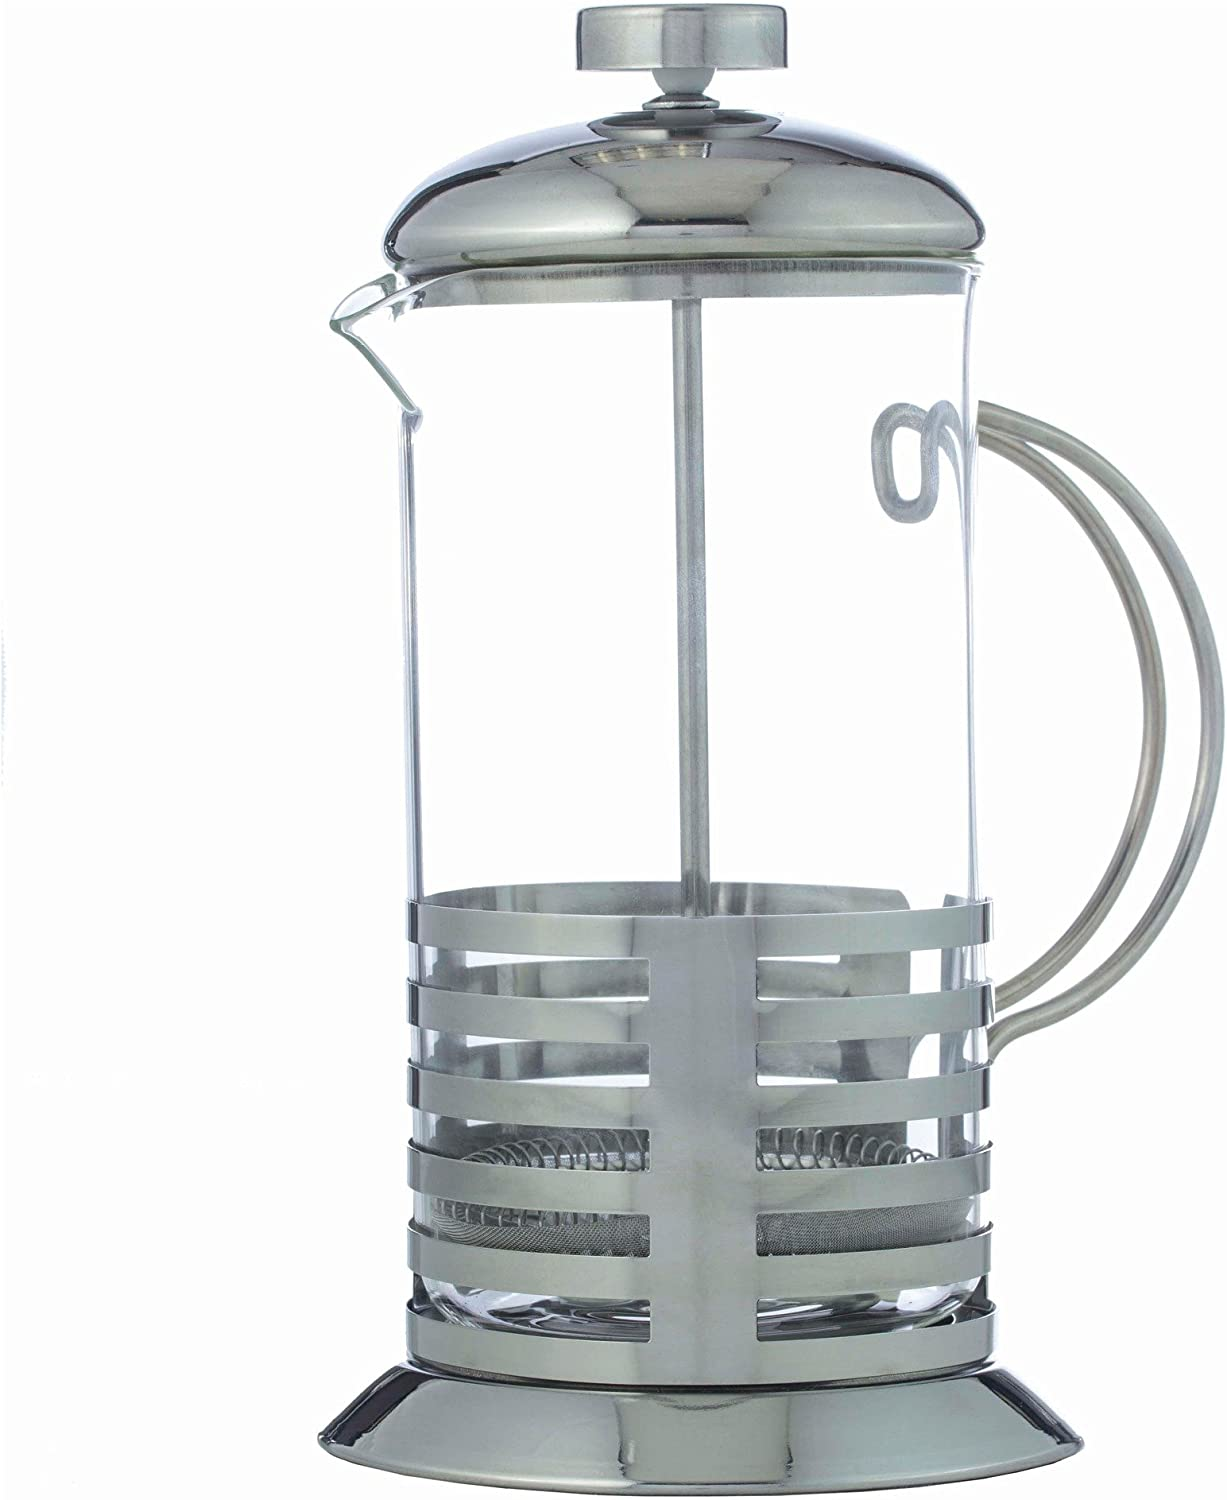 BNF KTFRPRS French Coffee Press Or Tea Maker,Clear Glass Carafe Dishwasher Safe,Heat and Cold Resistant,By Wyndham House,20 Ounce